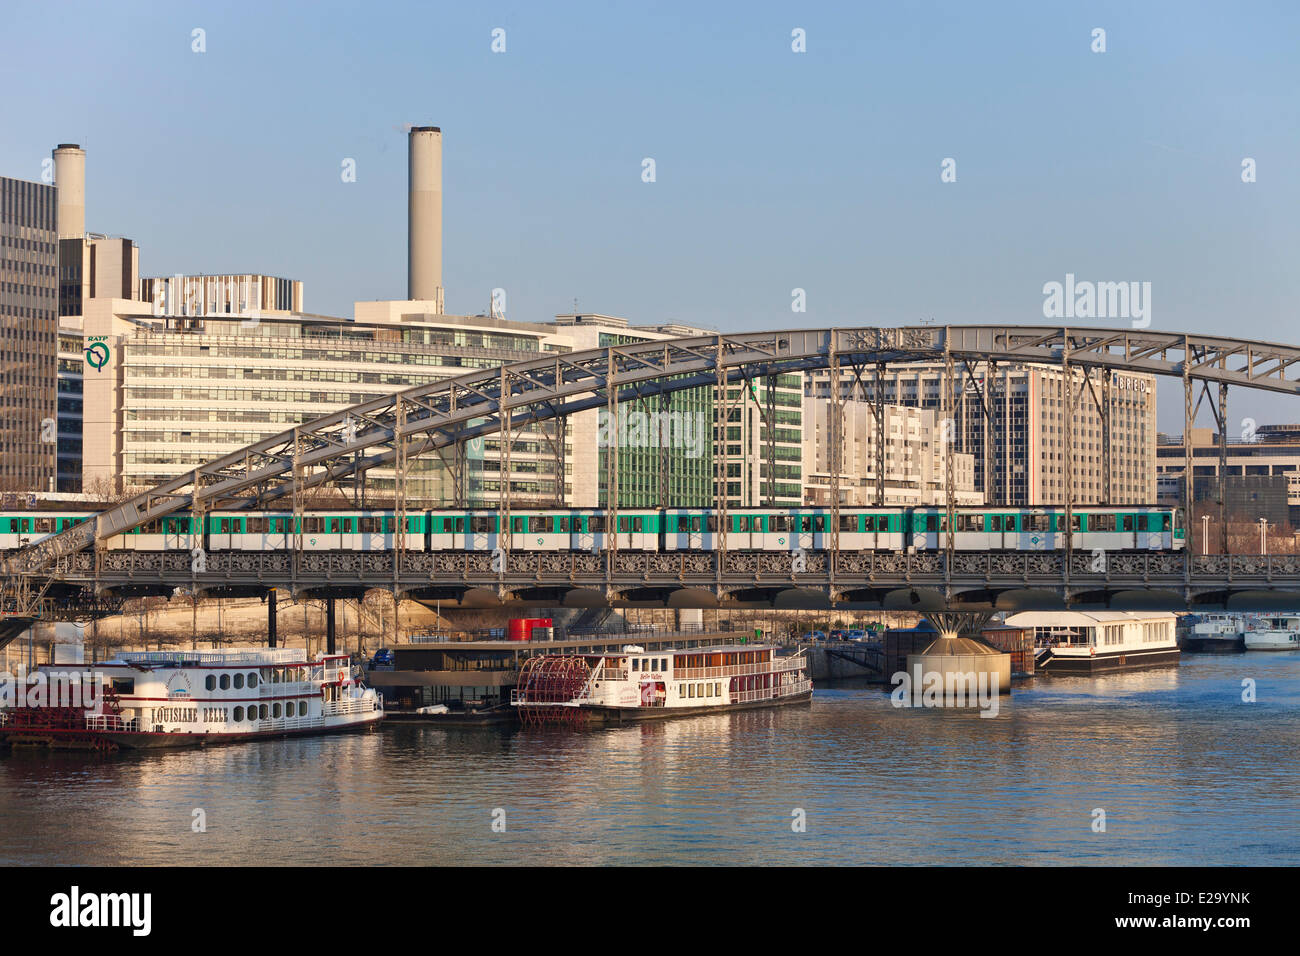 France, Paris, Austerlitz viaduct and subway line 5, Quai de Bercy business district and the Gare de Lyon - Stock Image